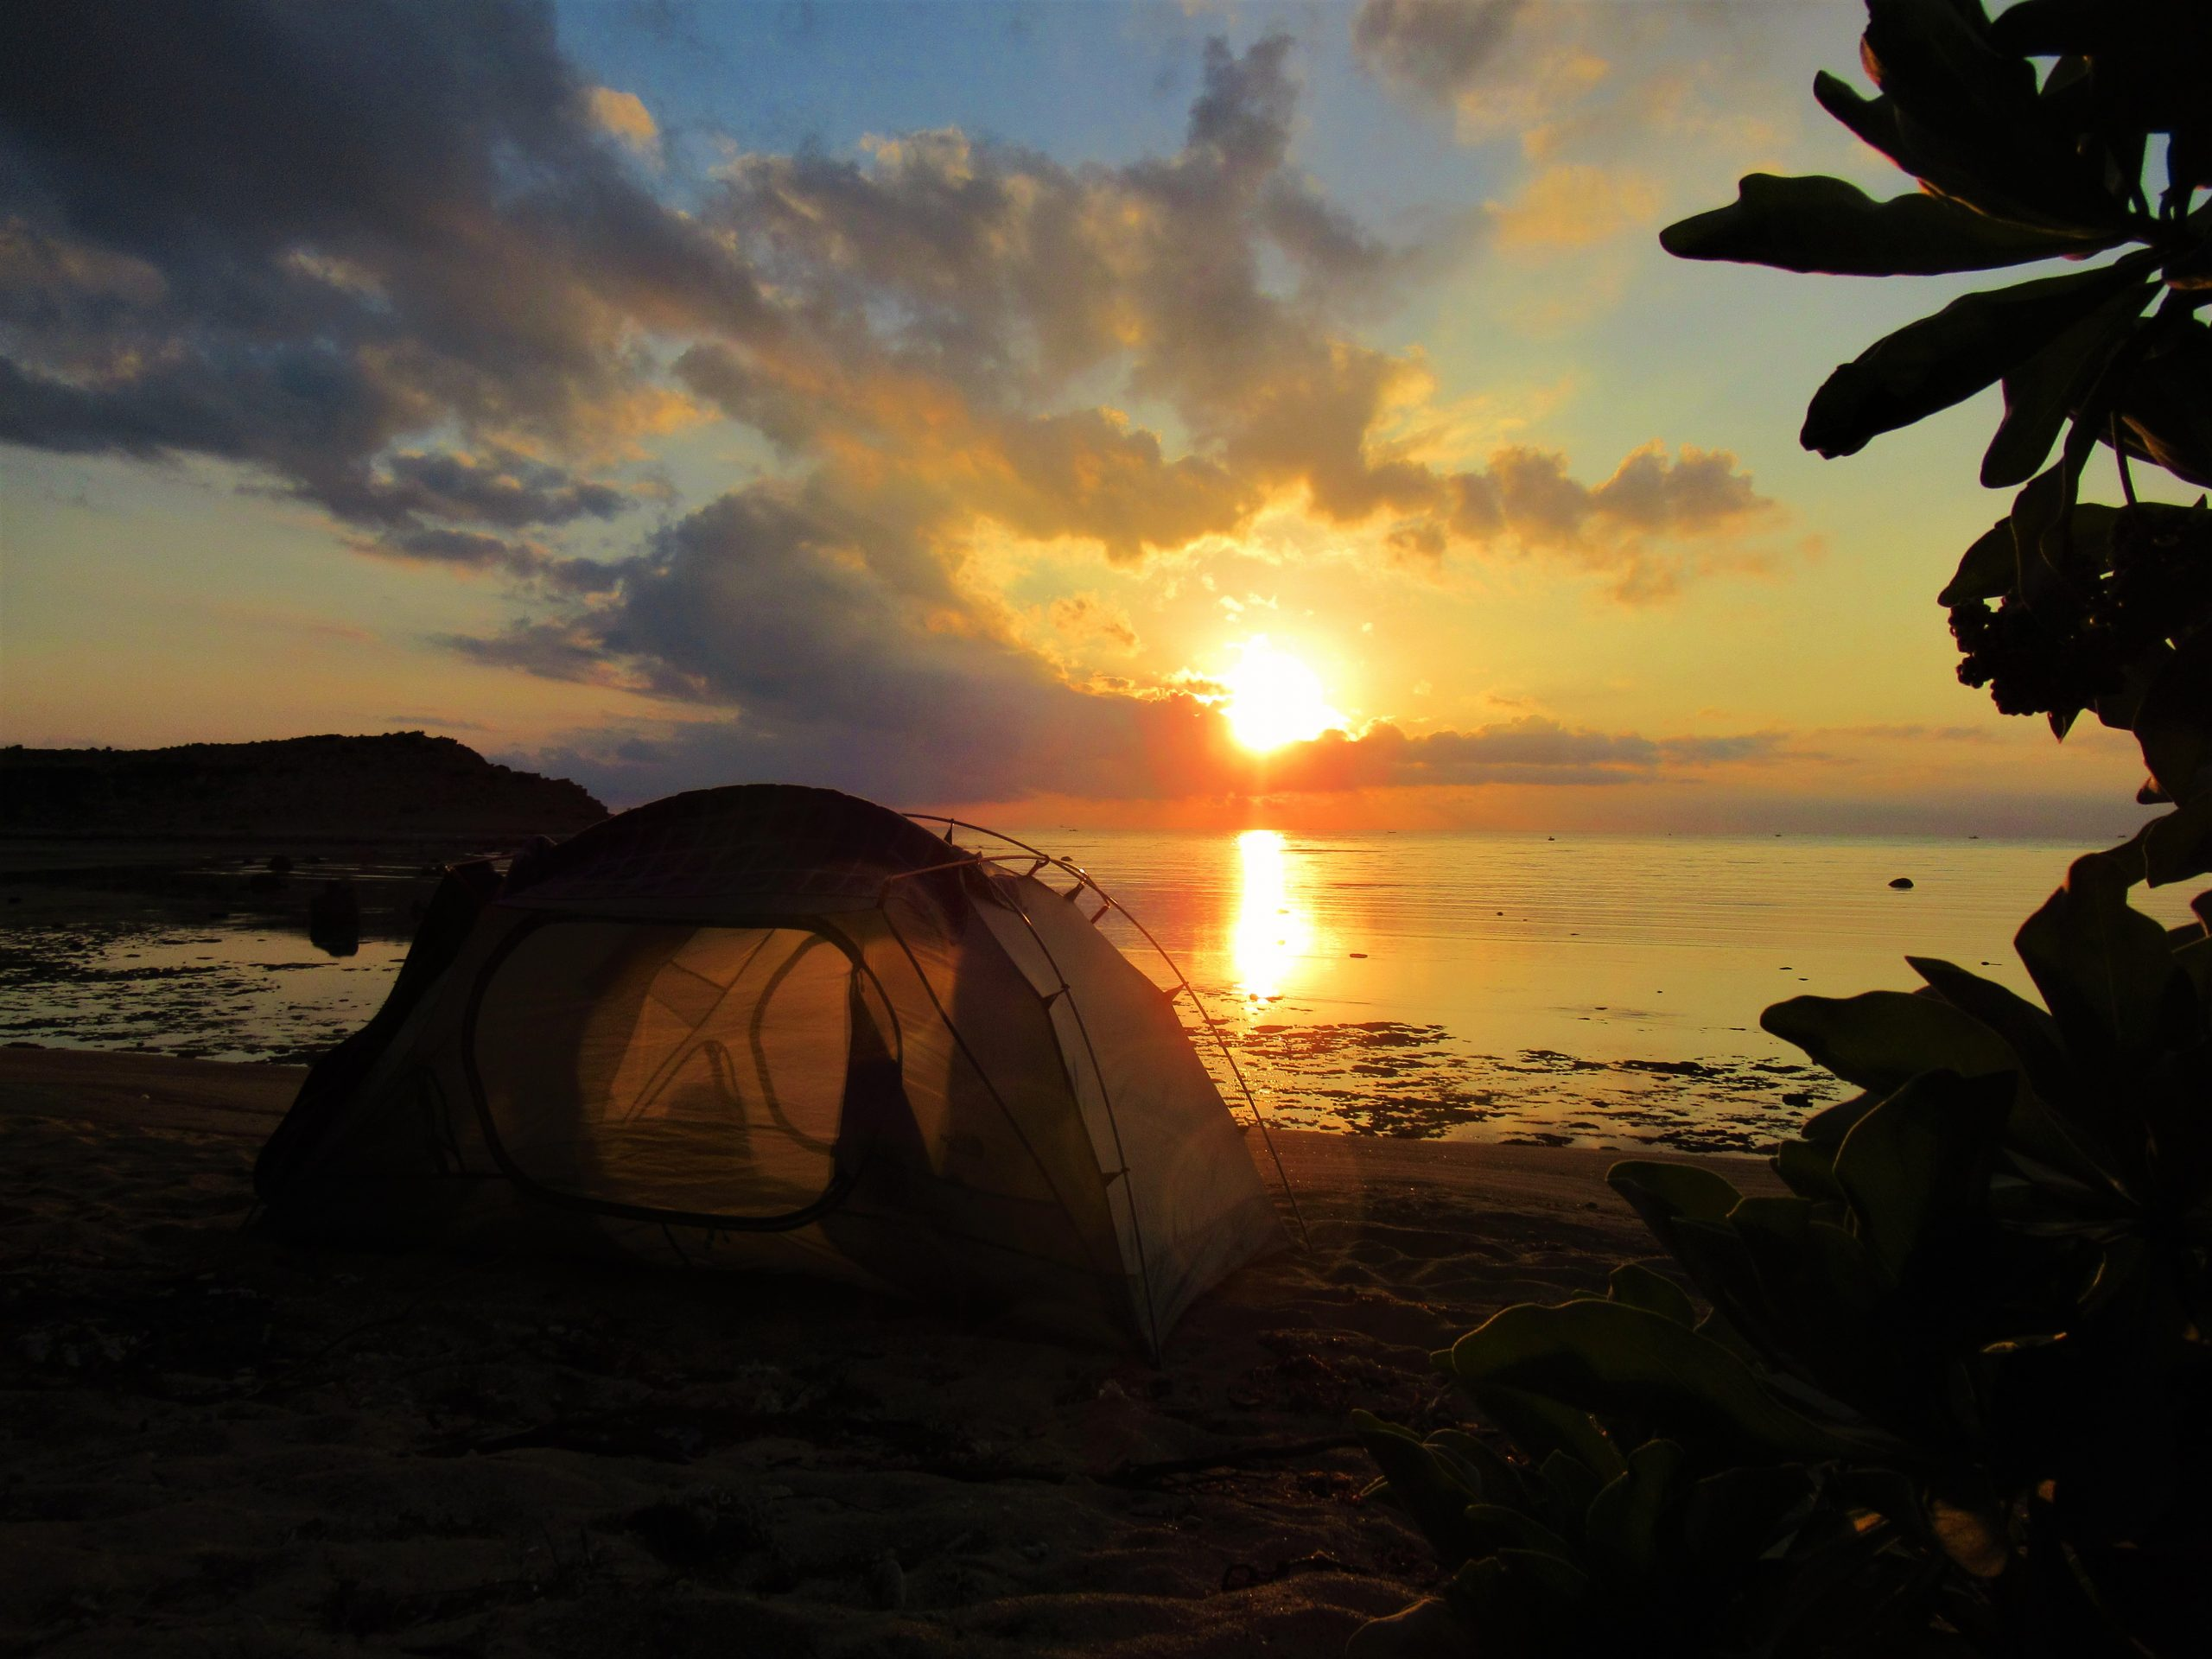 Camping in the Southern Dry Season, Vietnam